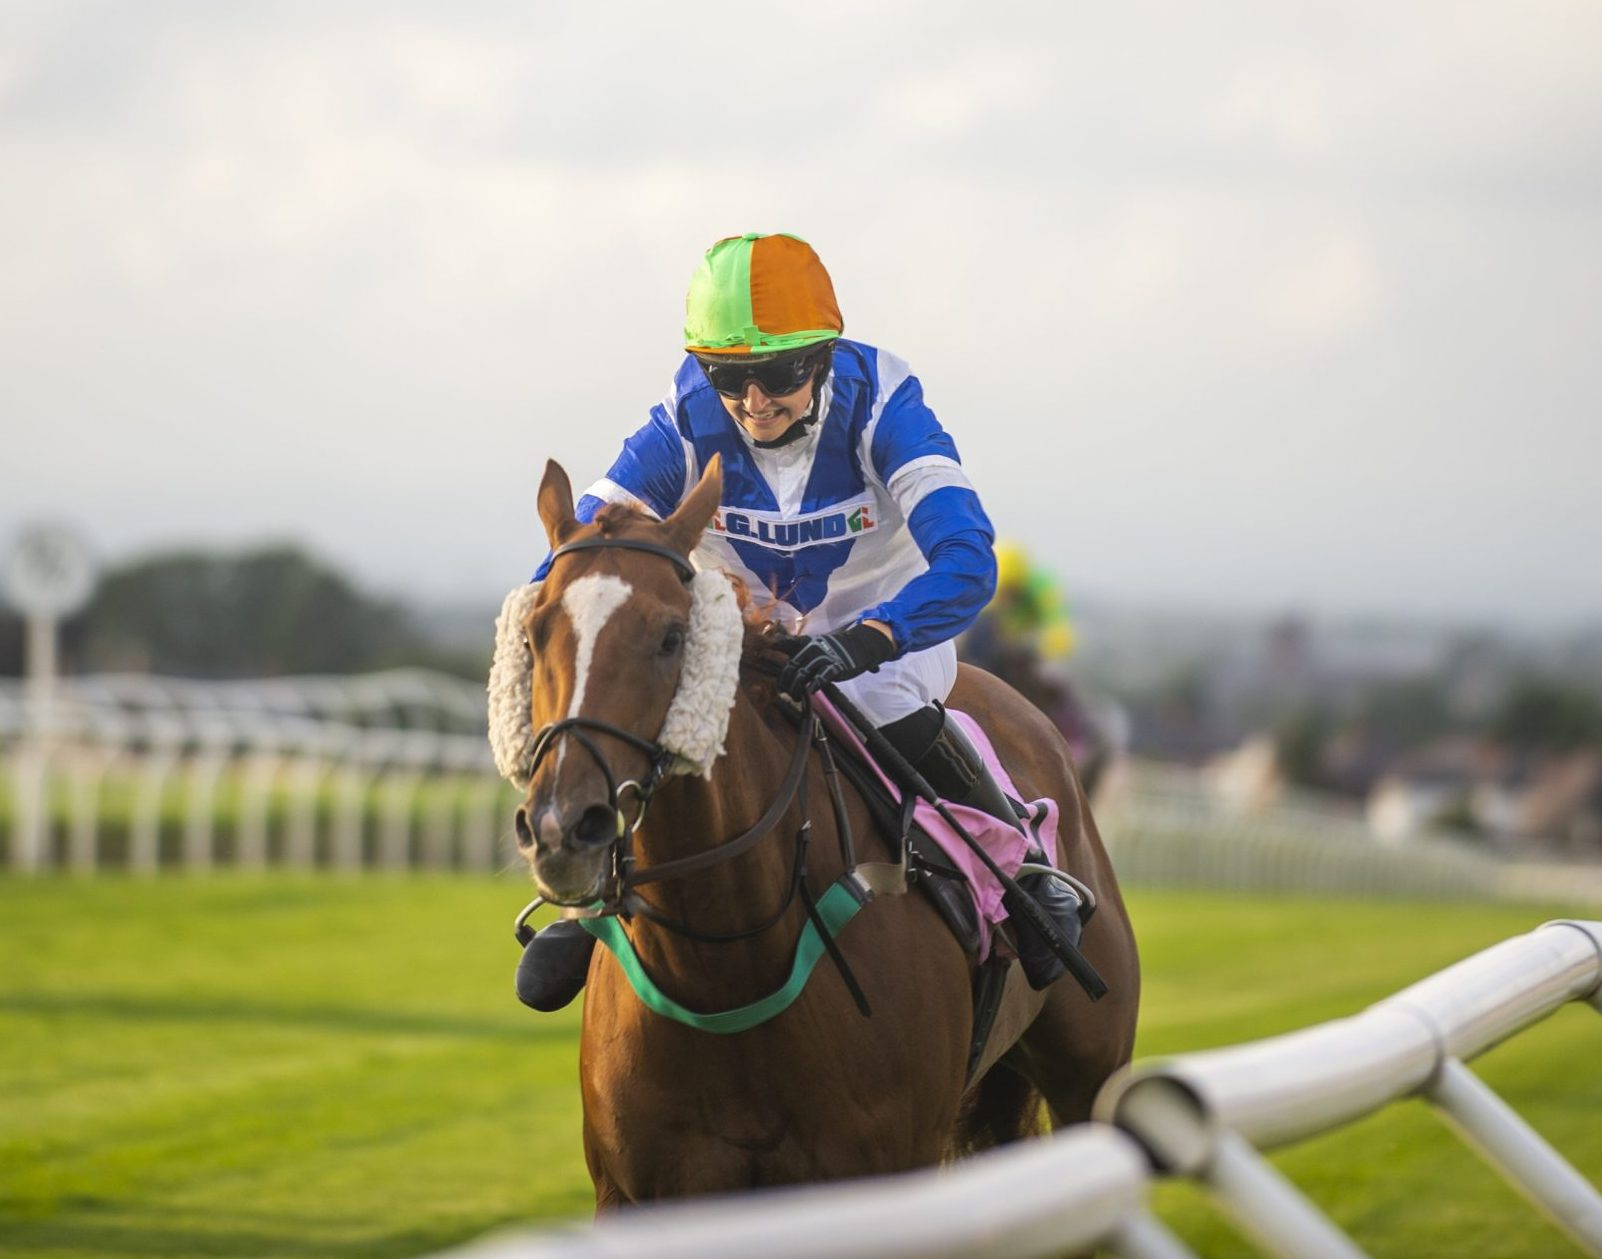 Local Hero Emma Sayer Calls Time On Career In The Saddle With Memorable Ladies Night Win